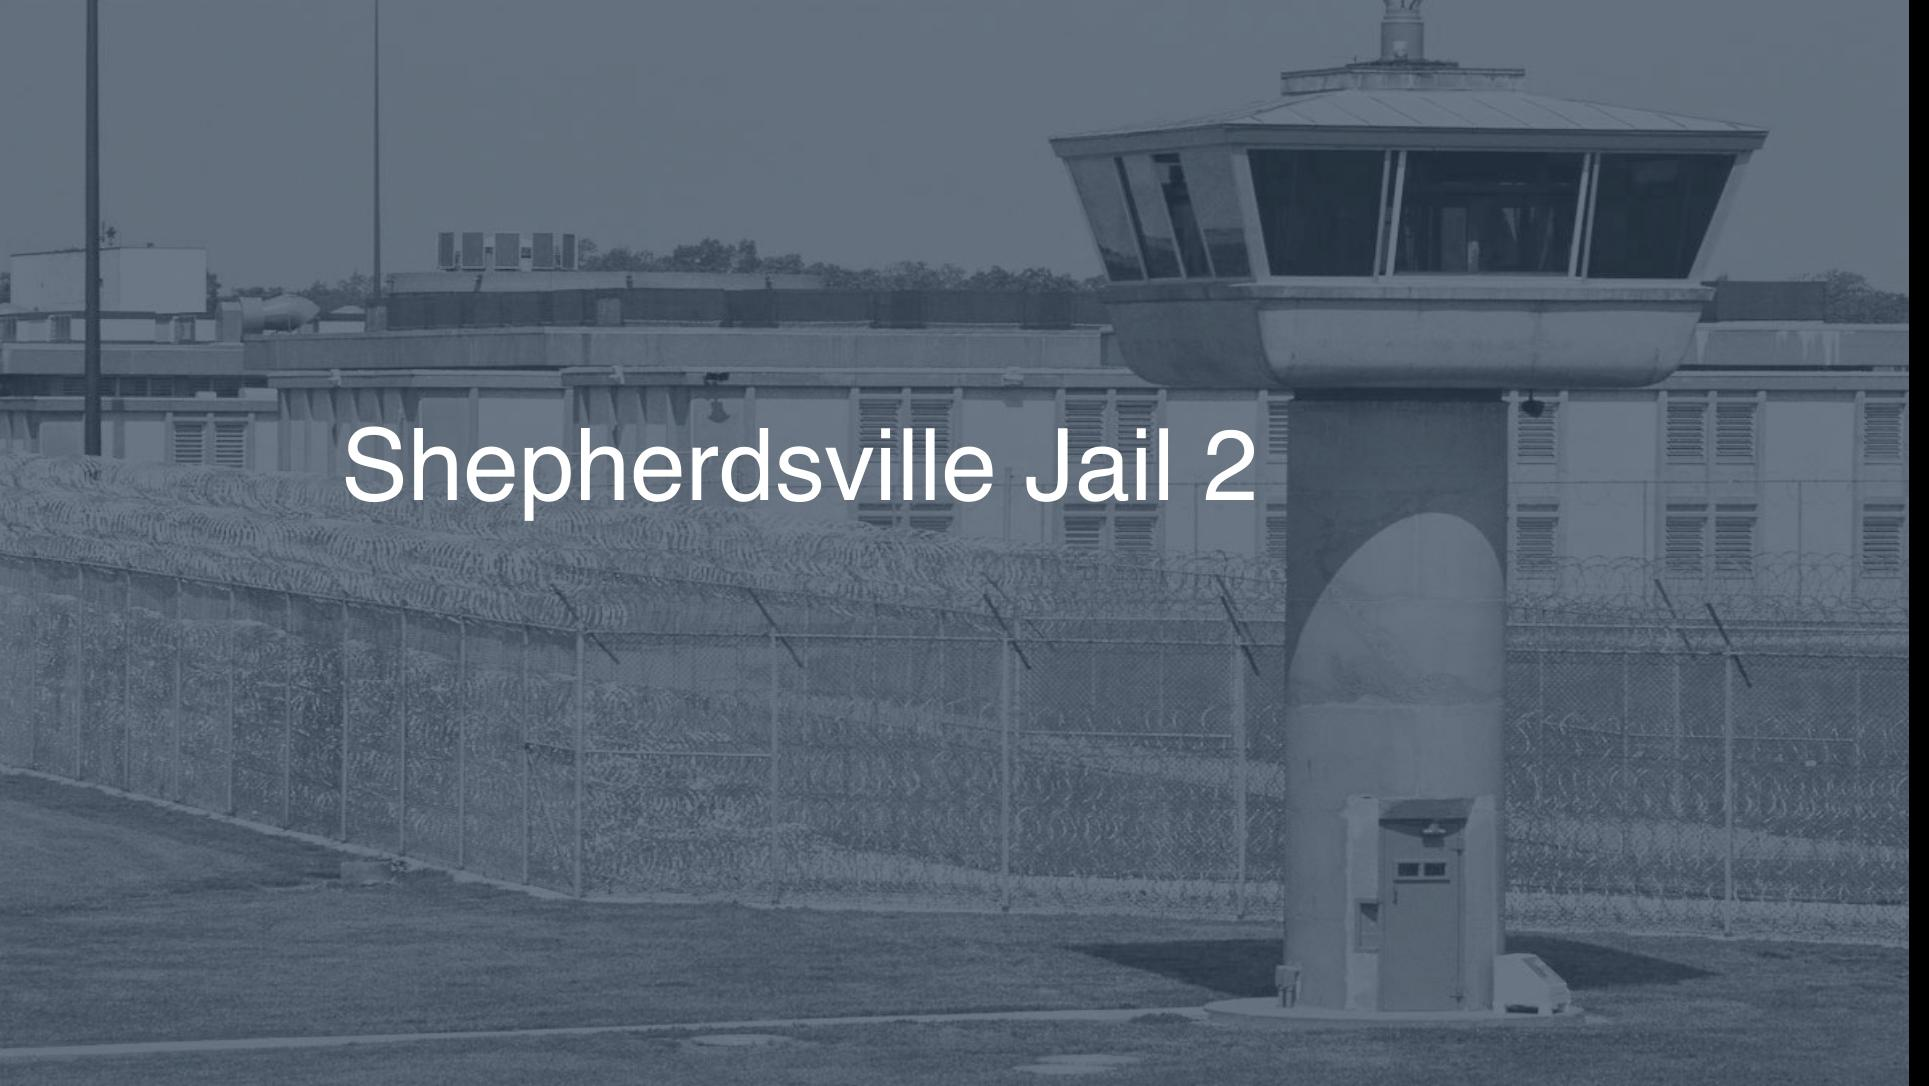 Shepherdsville Jail correctional facility picture